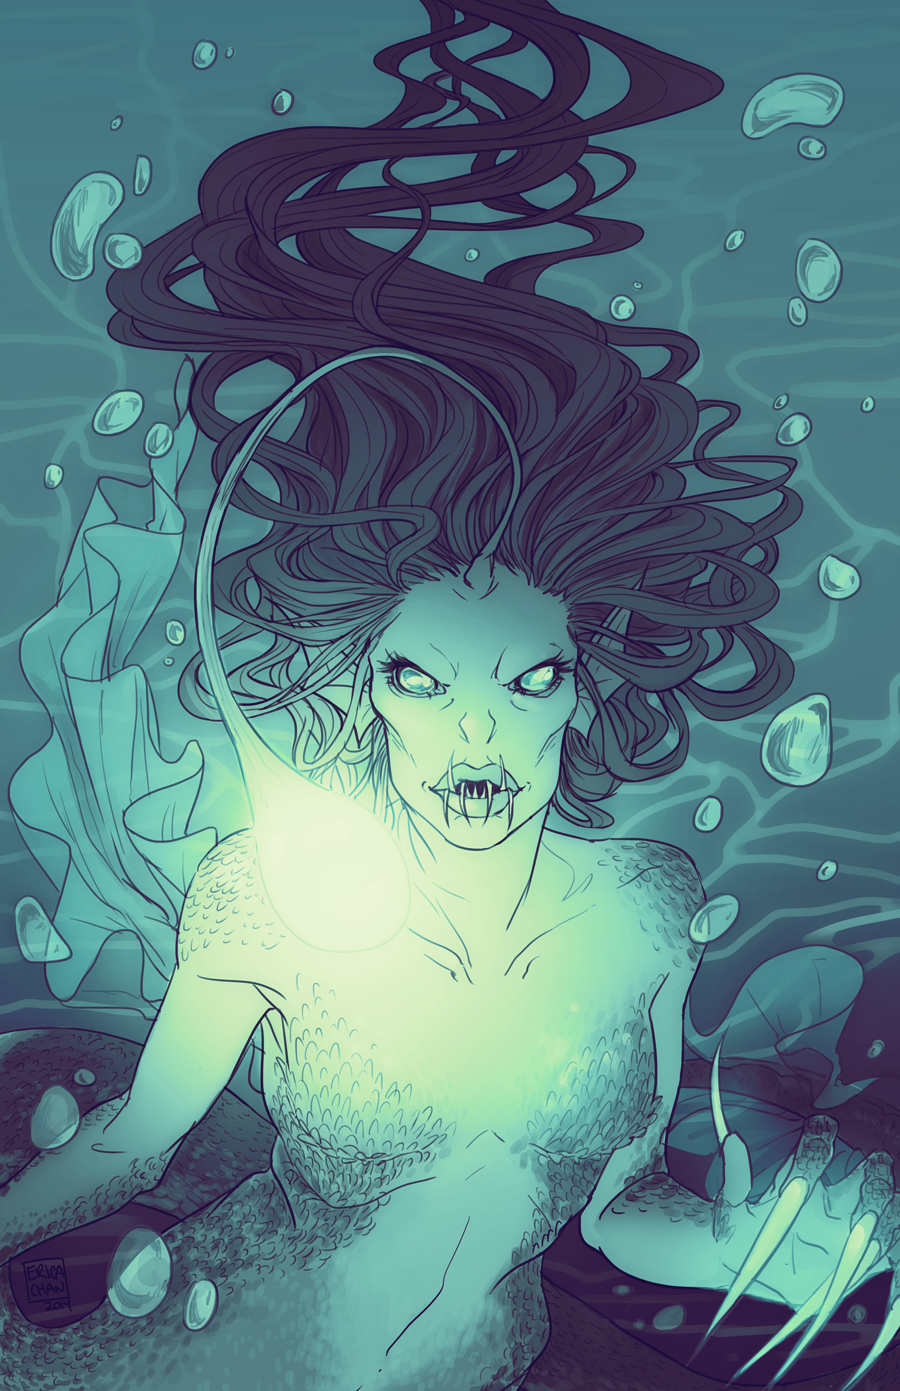 Pin by K Cali on Anglerfish | Pinterest | Mermaid, Scary and Merfolk